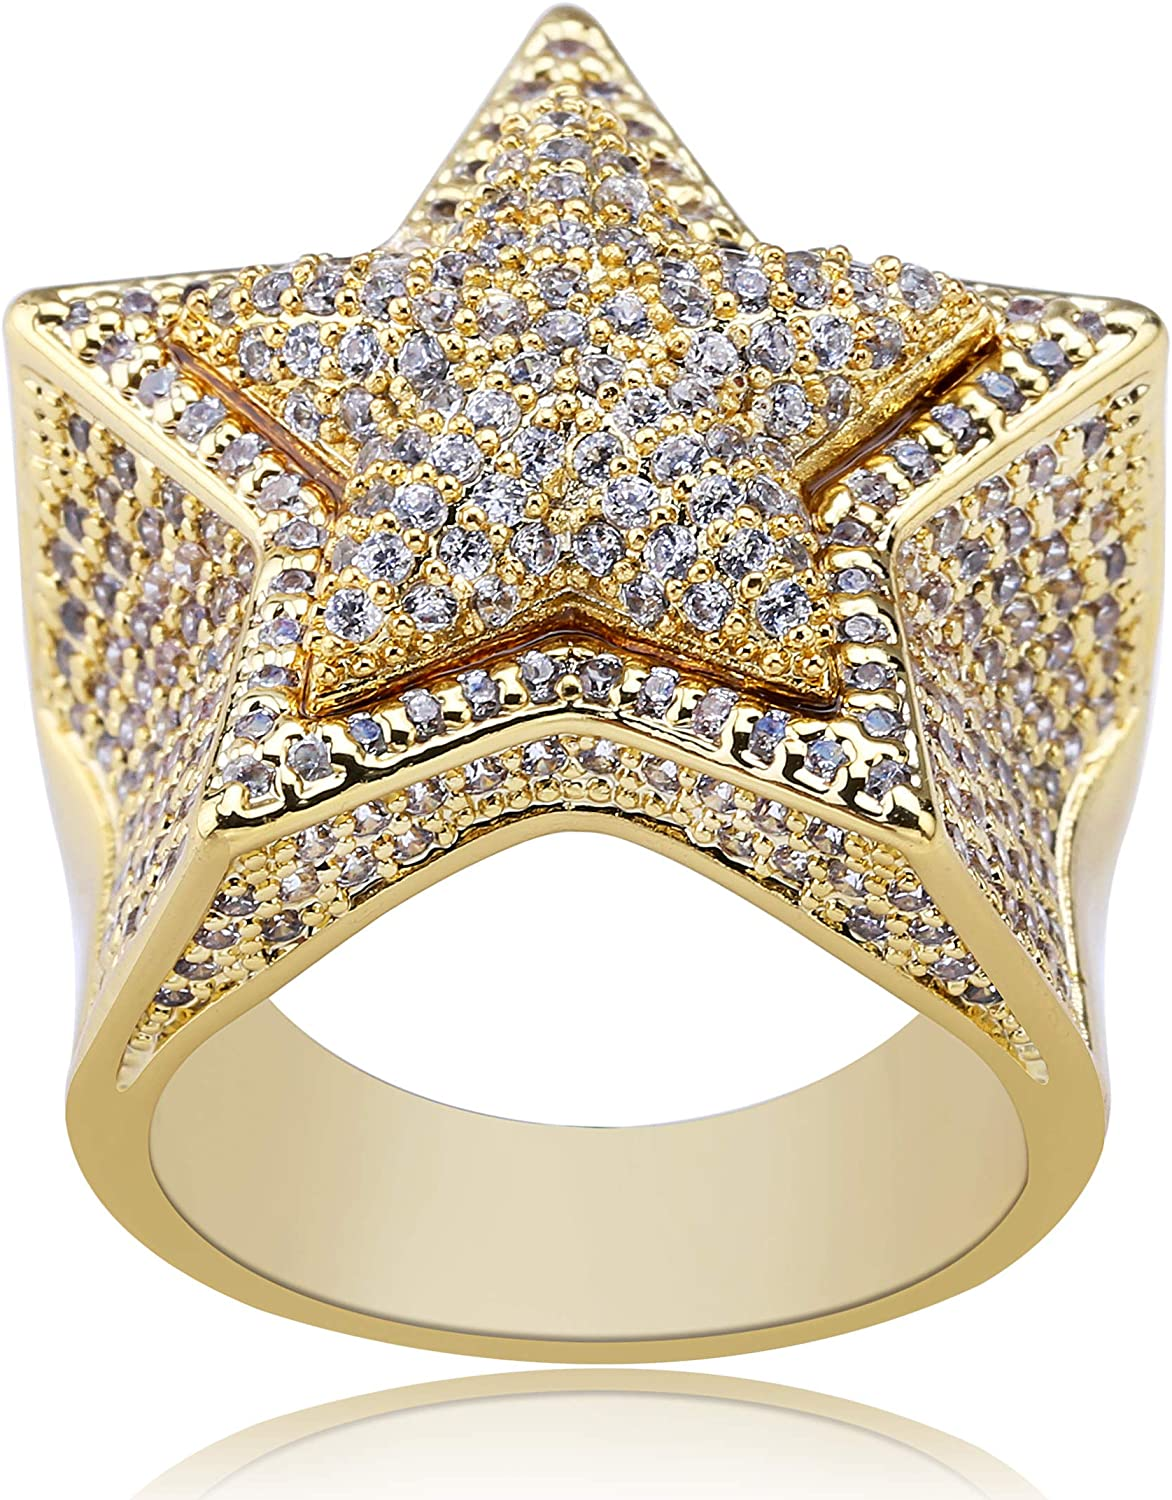 TOPGRILLZ 14K Gold Plated Iced Out CZ Simulated Diamond Flooded 3D Star Punky Rappers Ring for Men Engagement Hip Hop Jewelry